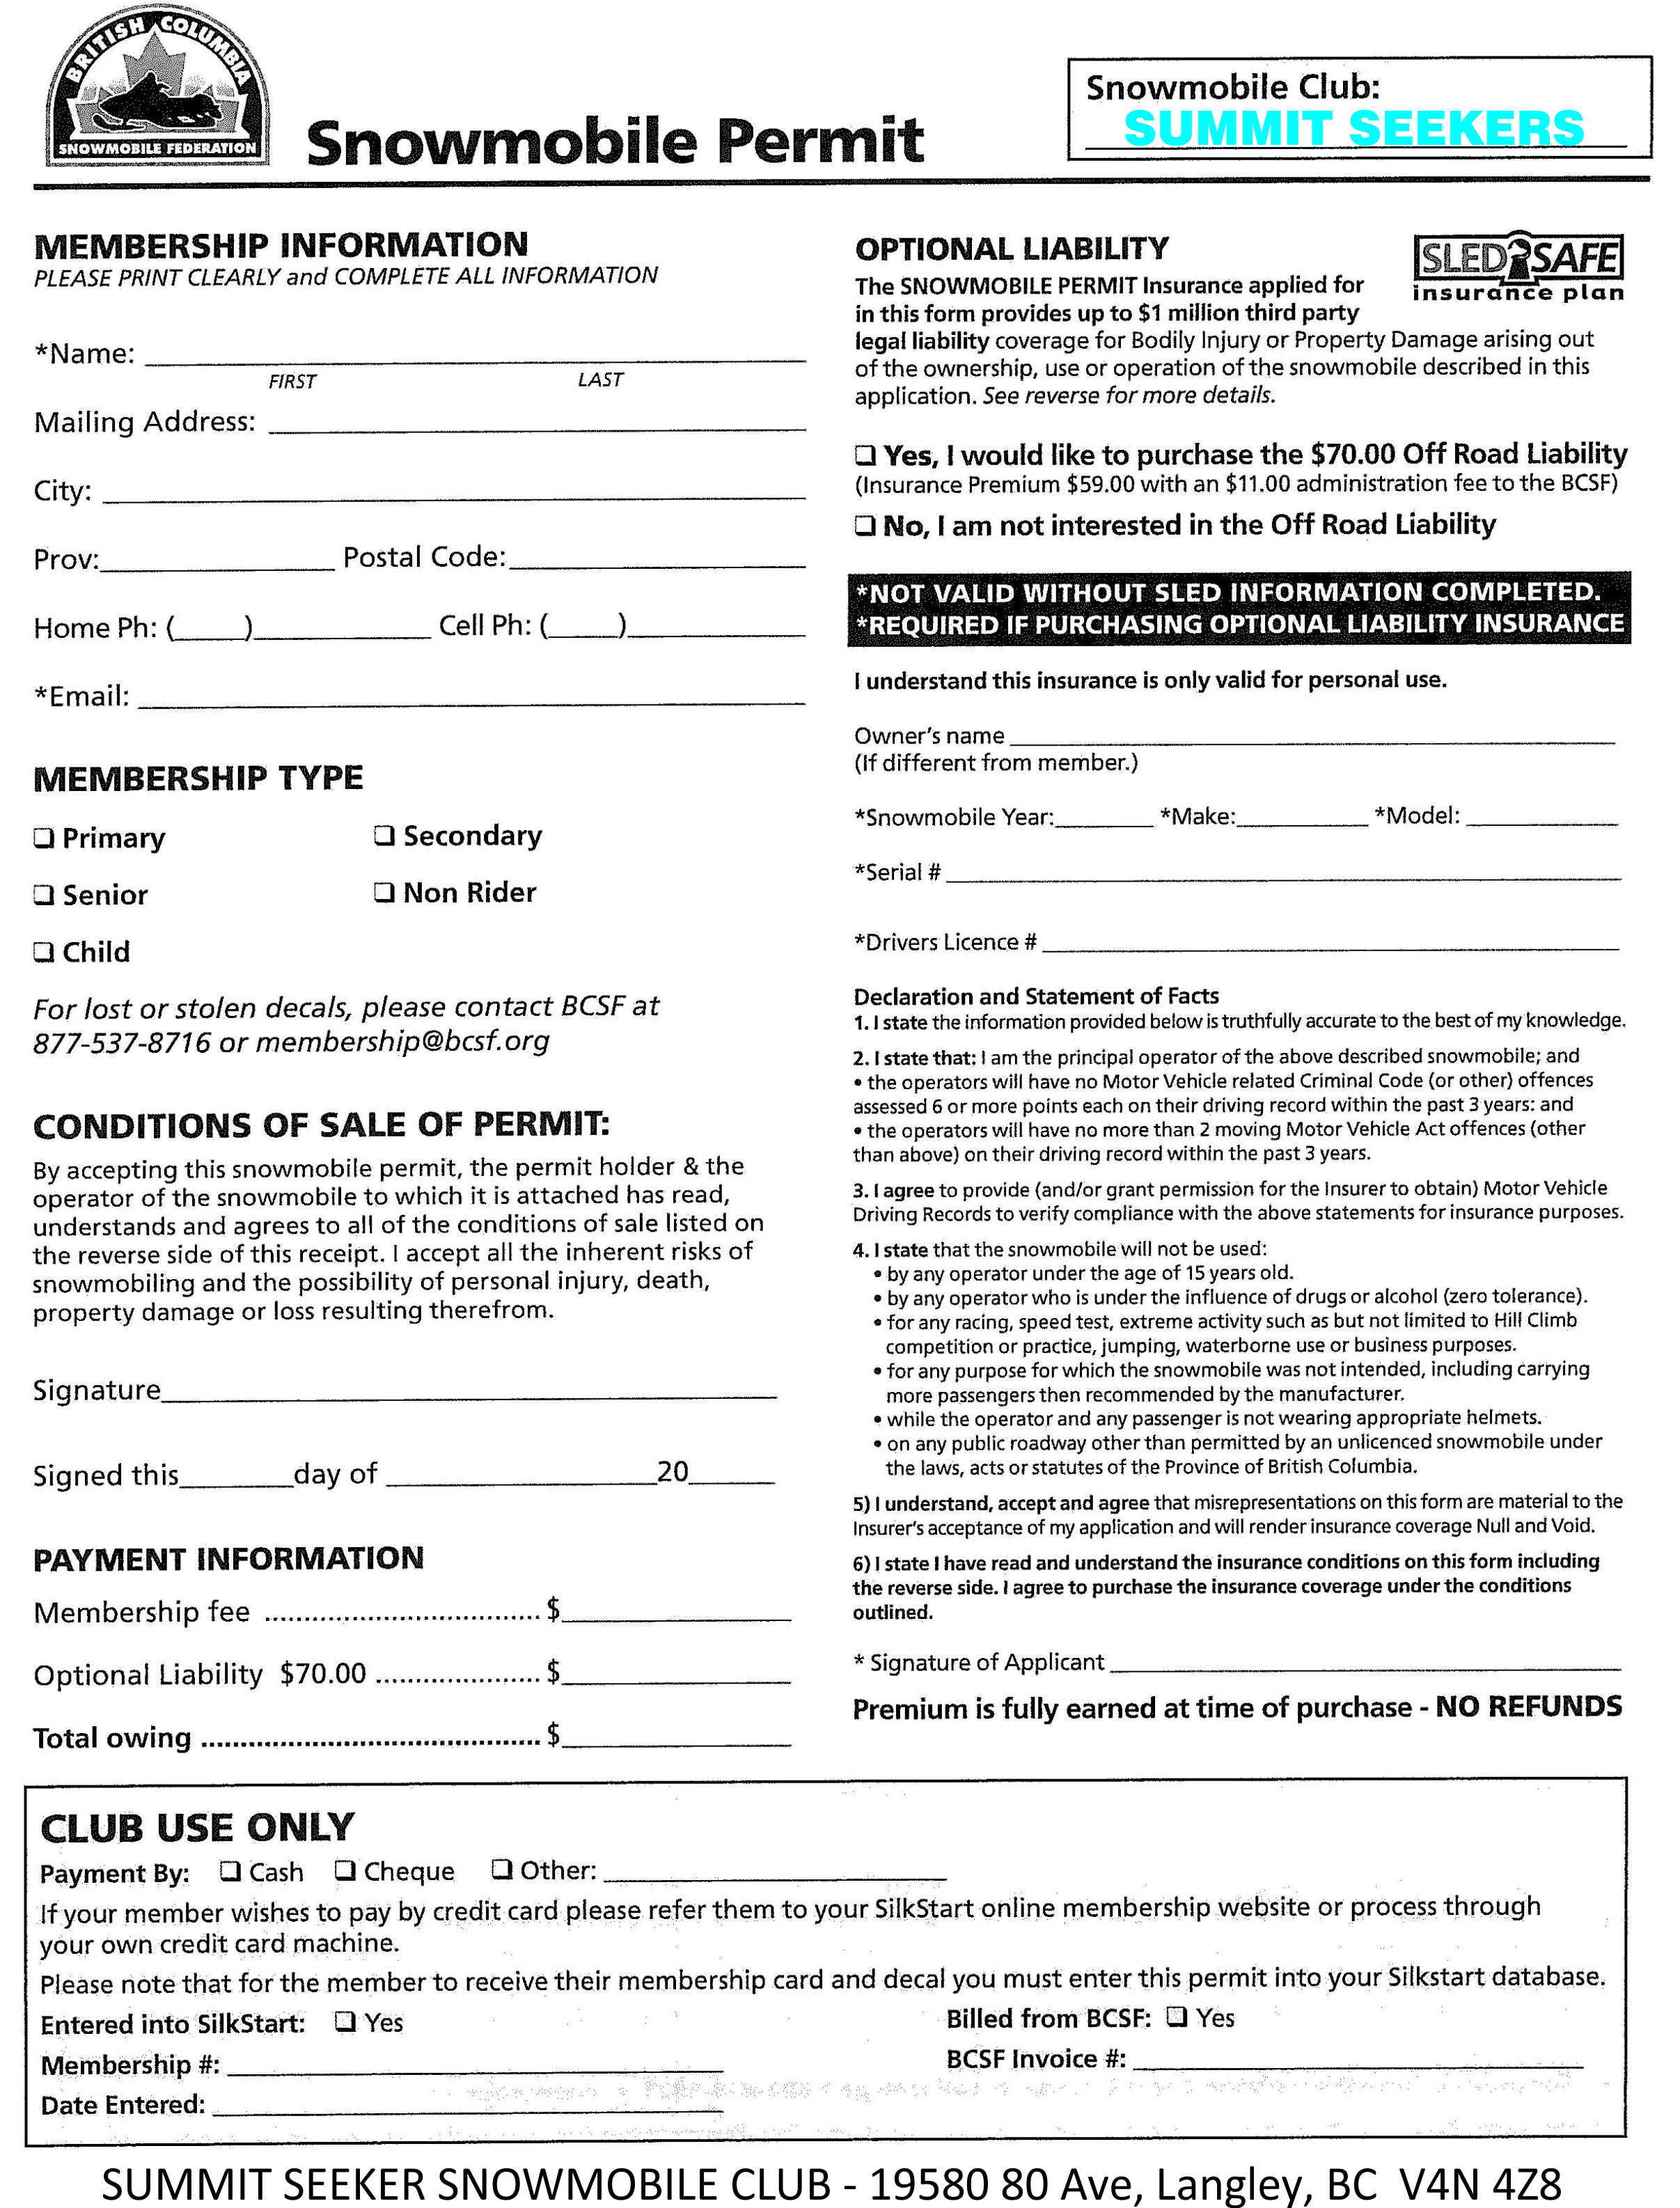 For a printable PDF or printed paper version of membership form,  please contact us and we will gladly email one to you.